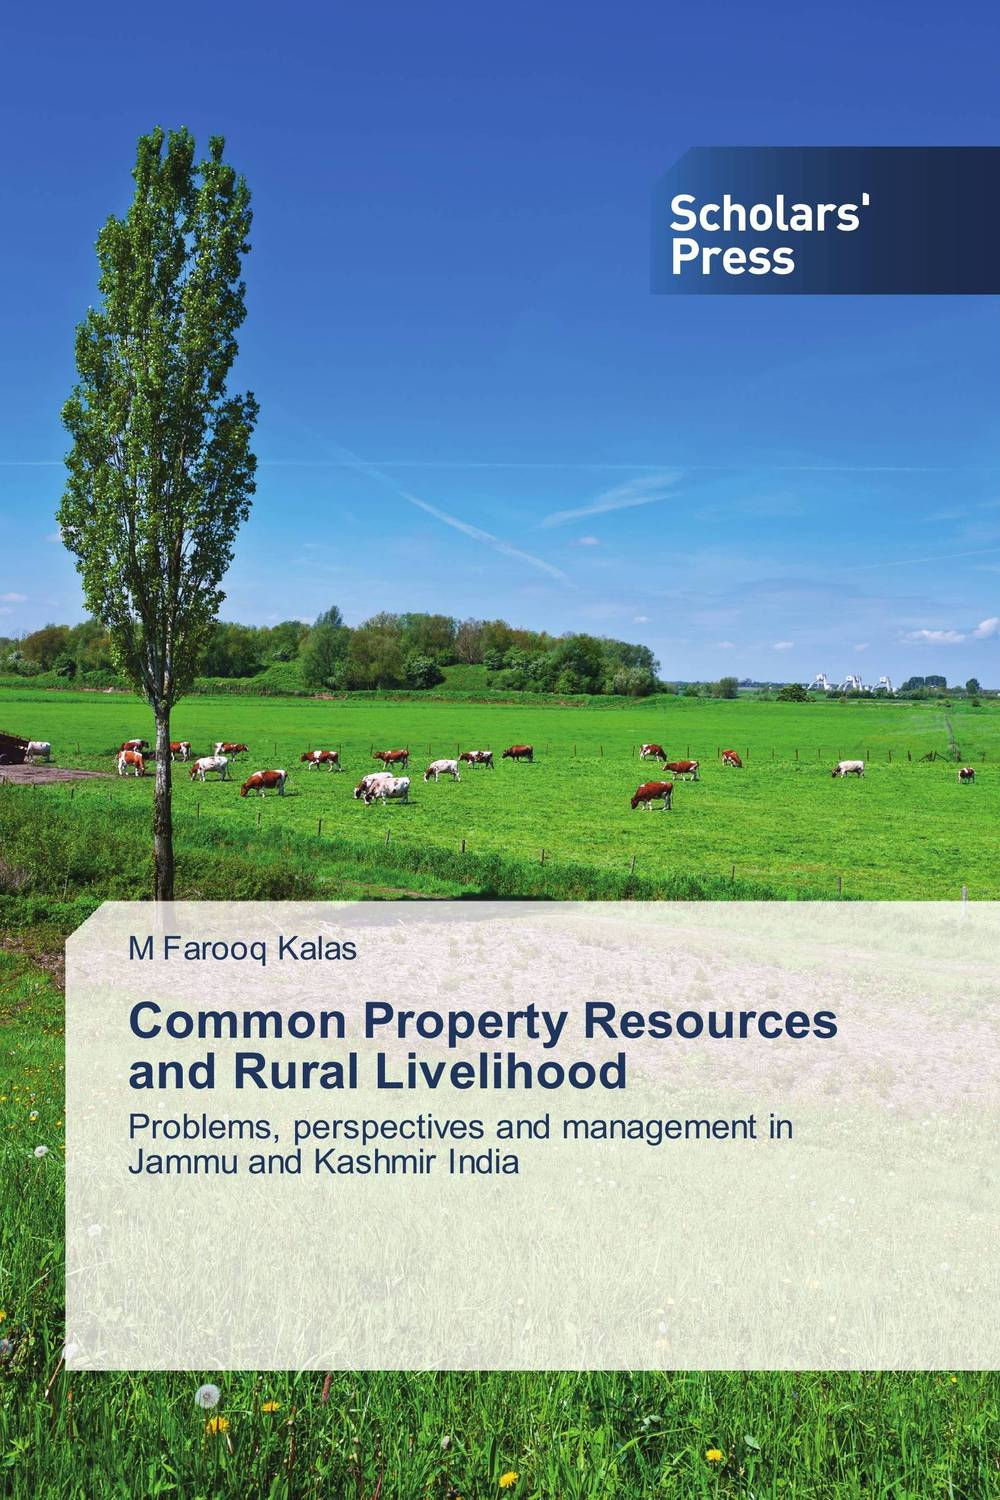 Common Property Resources and Rural Livelihood